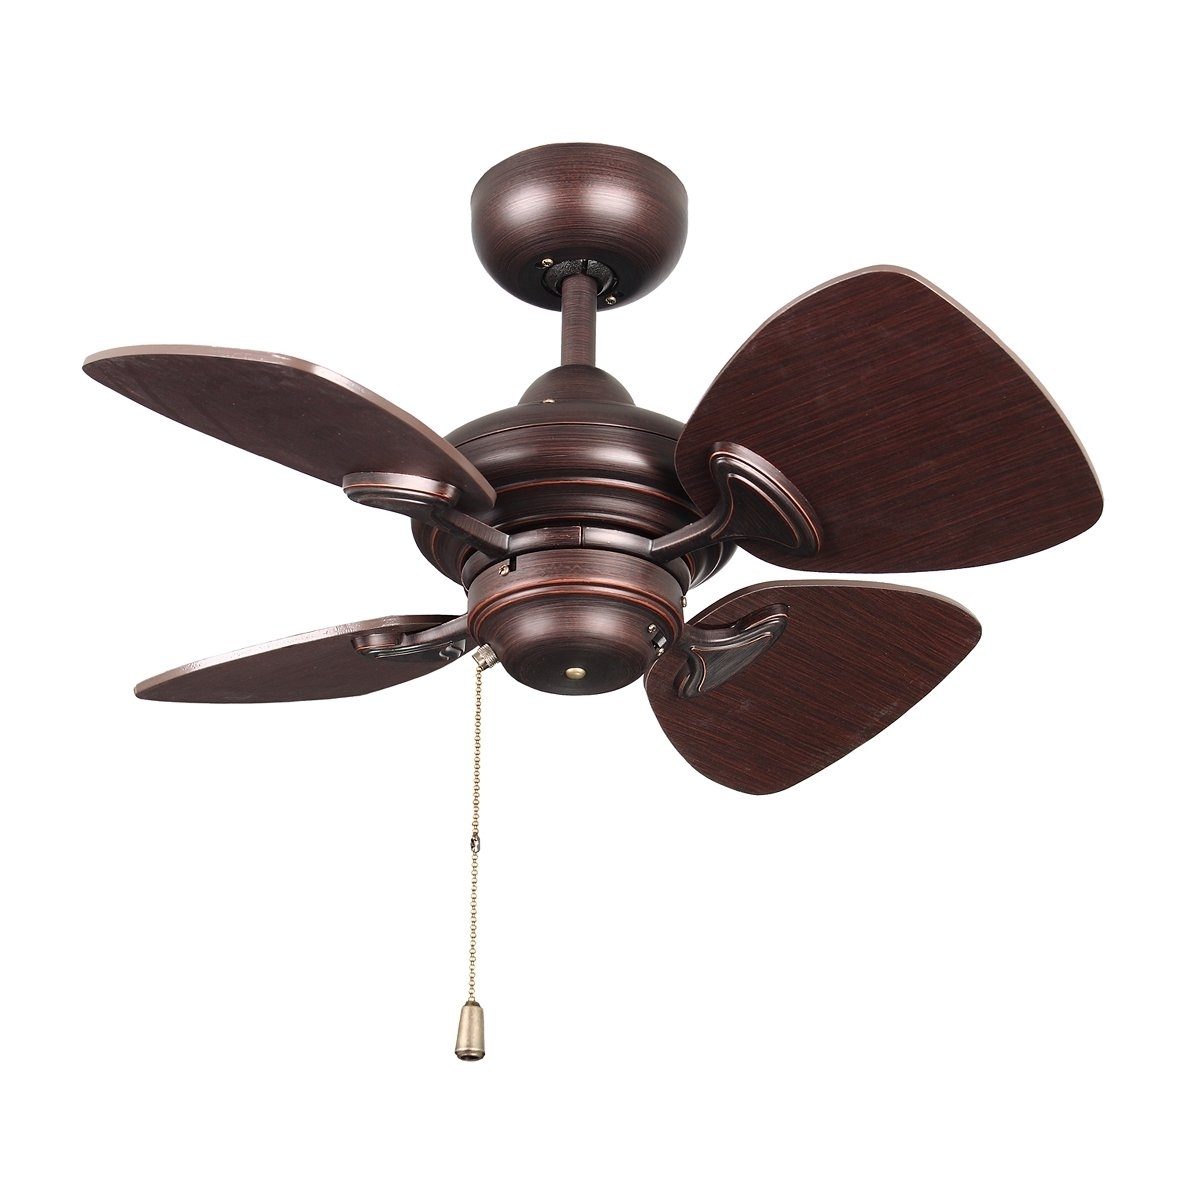 Kendal Lighting Ac16324 Aries Ceiling Fan | Lowe's Canada In Outdoor Ceiling Fans With Copper Lights (#13 of 15)